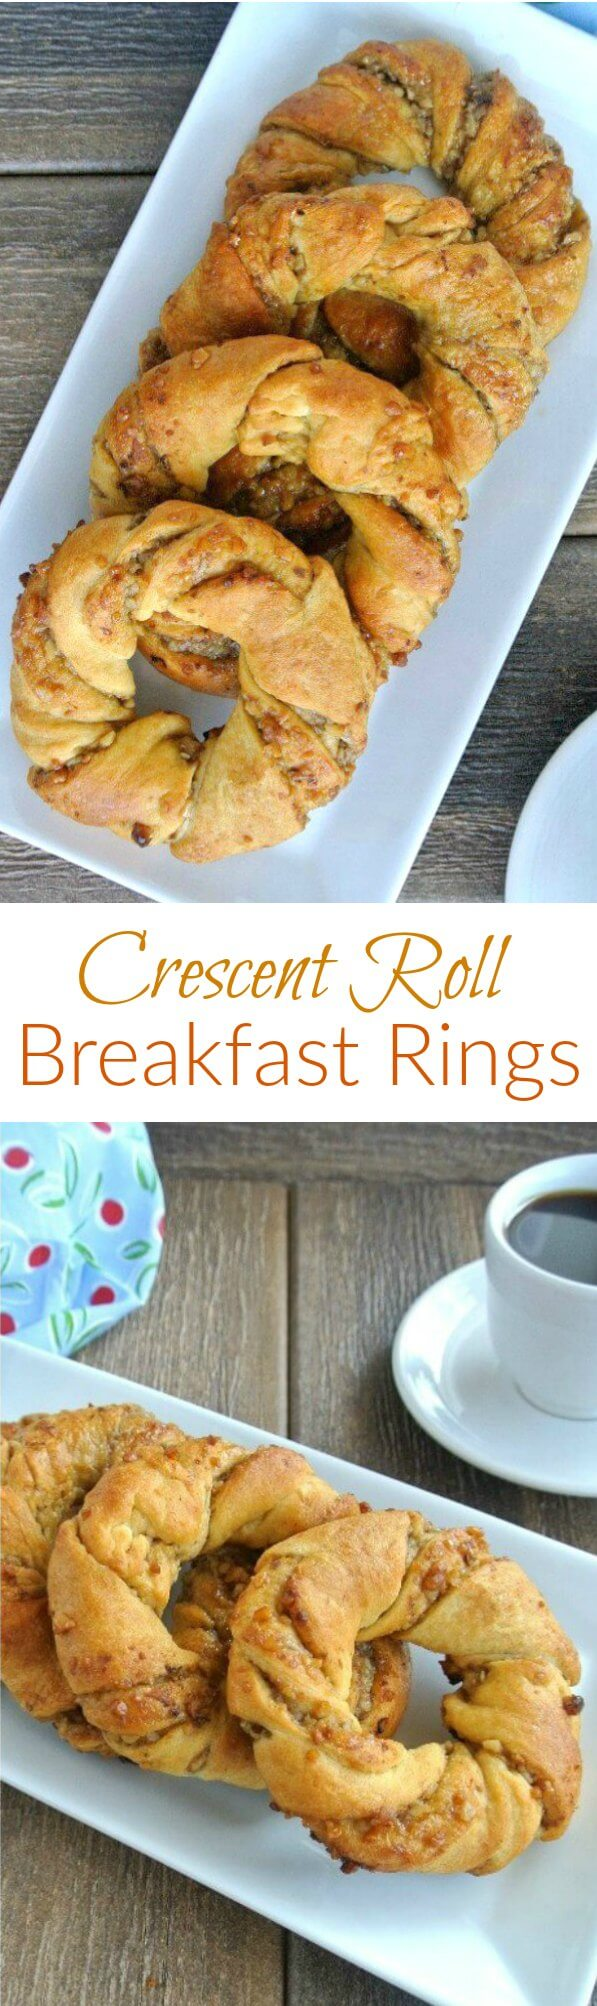 Crescent Roll Breakfast Rings are easy to make & are filled with great ingredients.Perfect for Christmas treats and all through the holidays. How about brunch?  #CrescentRolls #pastry #brunch #breakfast #veganbreakfast #vegan #veganrecipes #veganfood #recipes #Christmas #veganinthefreezer